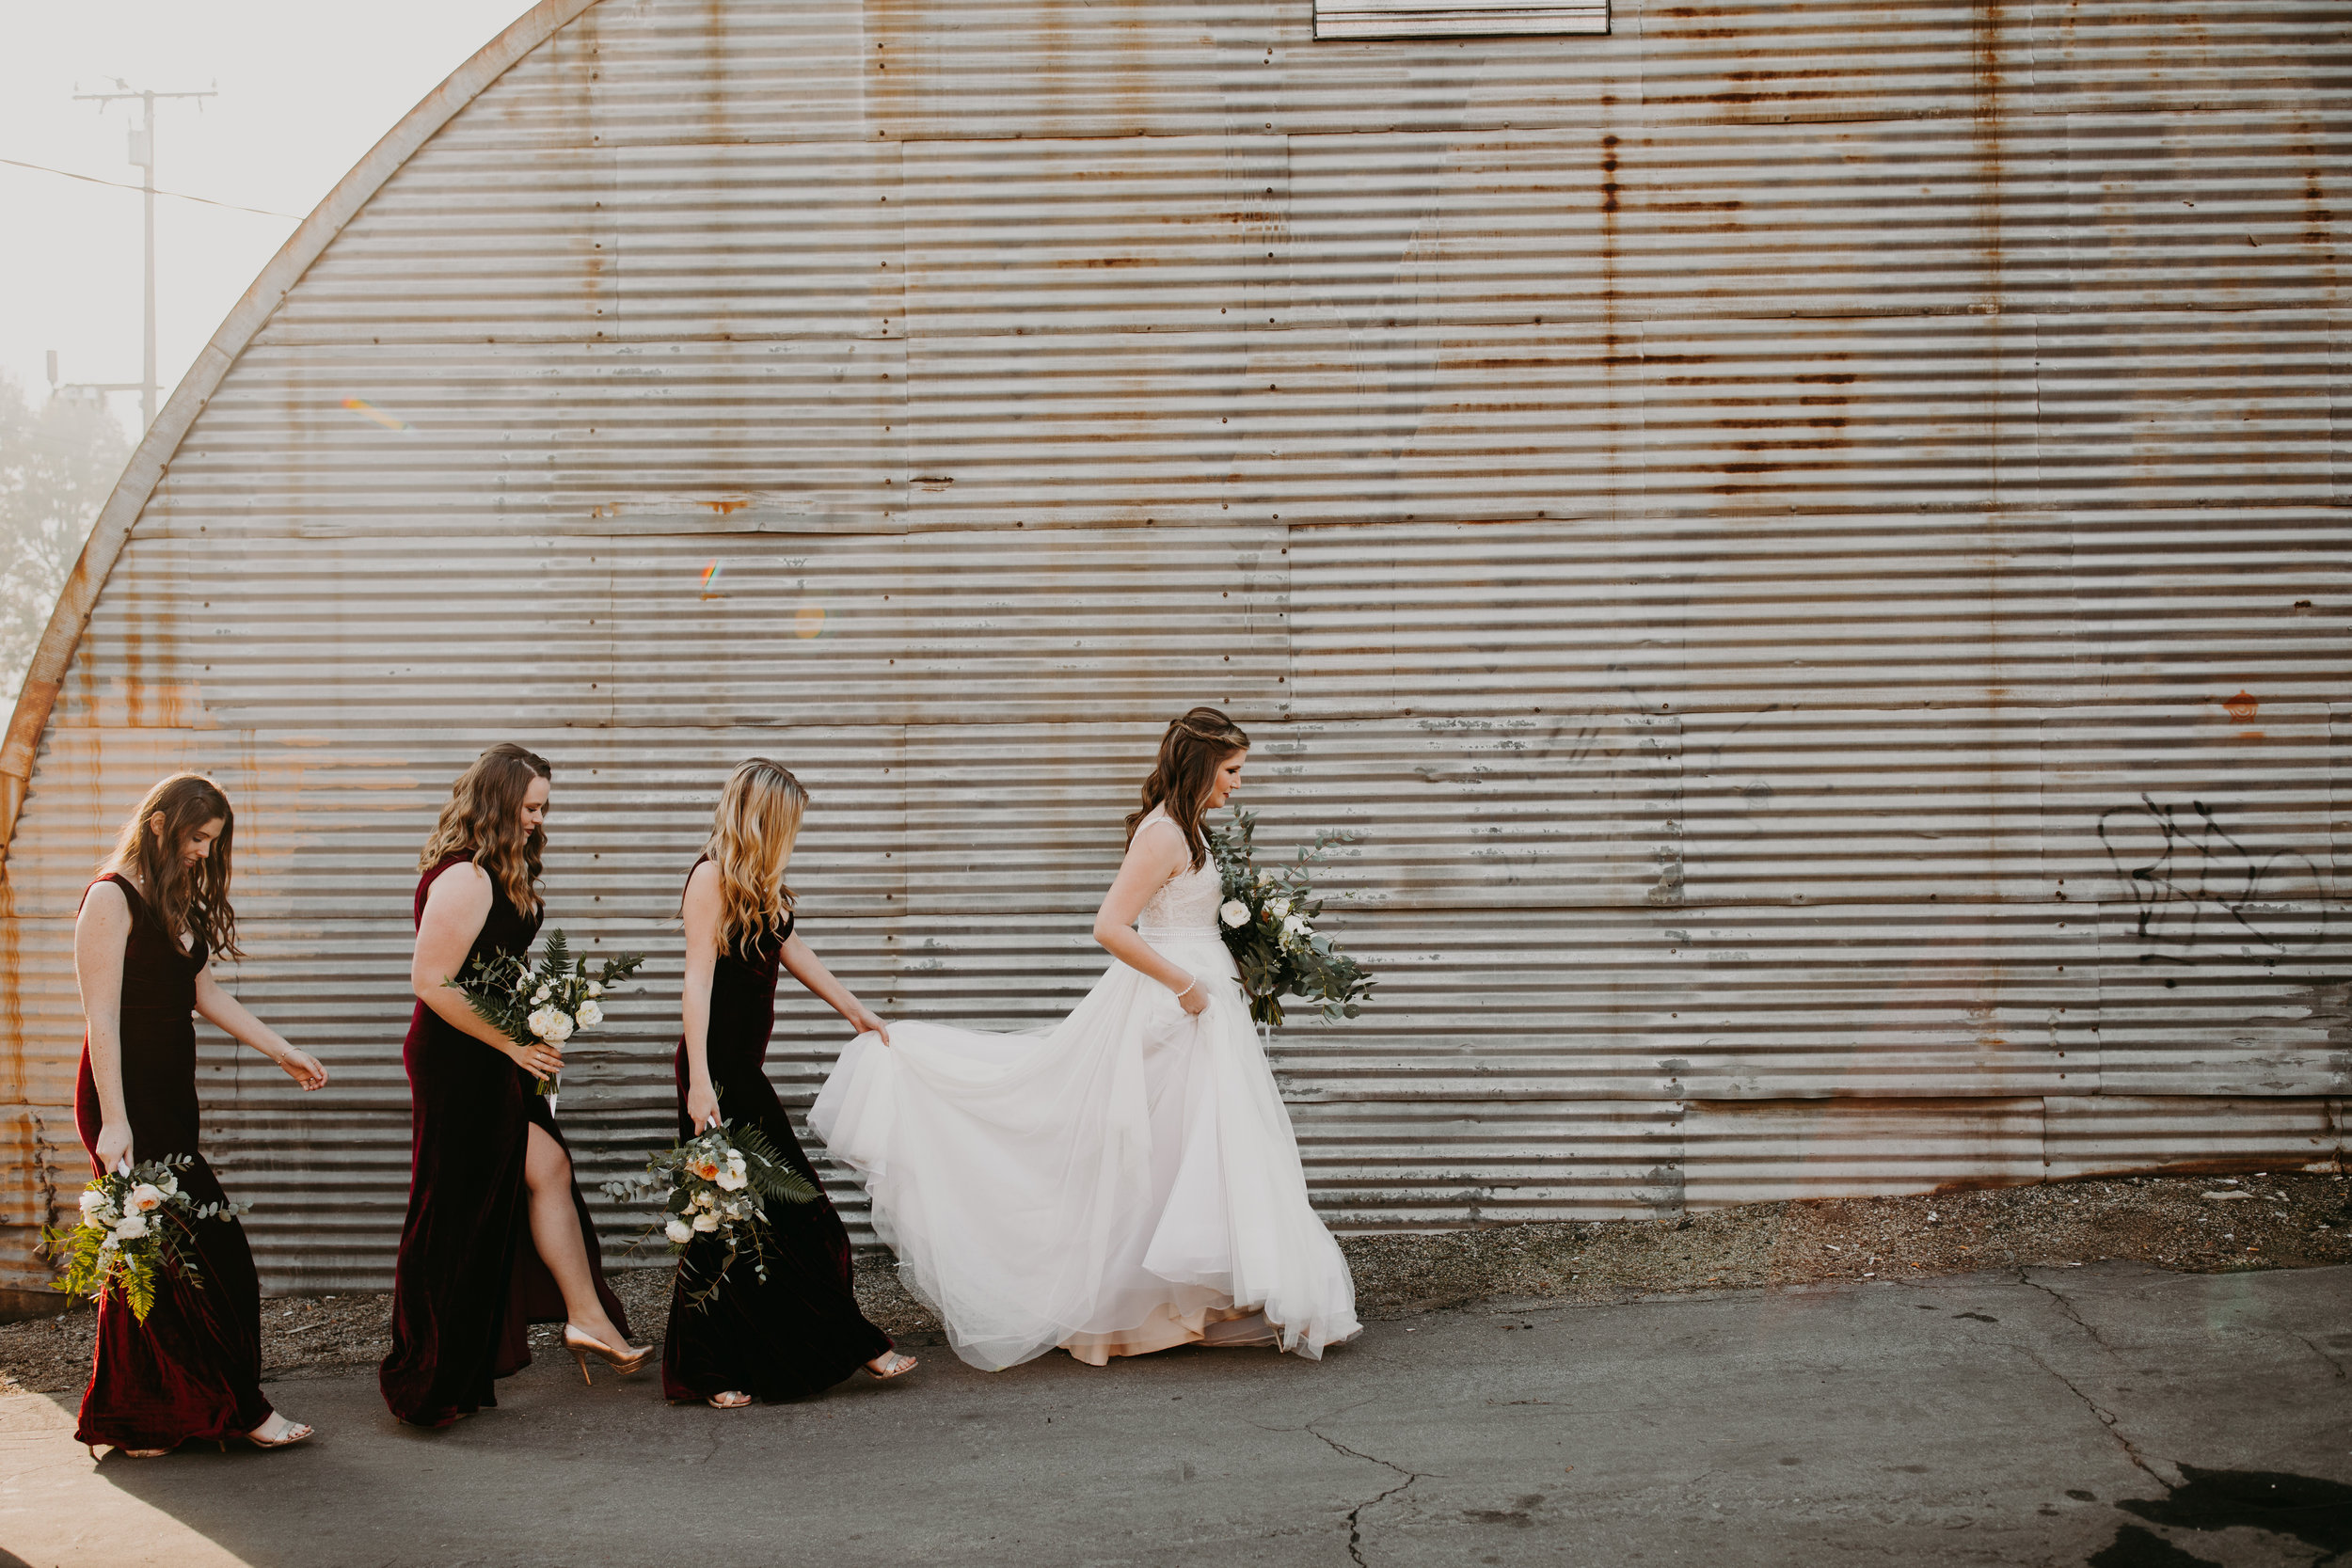 Smoky Hollow Studios Wedding Anne & Lewis Emily Magers Photography-248.jpg